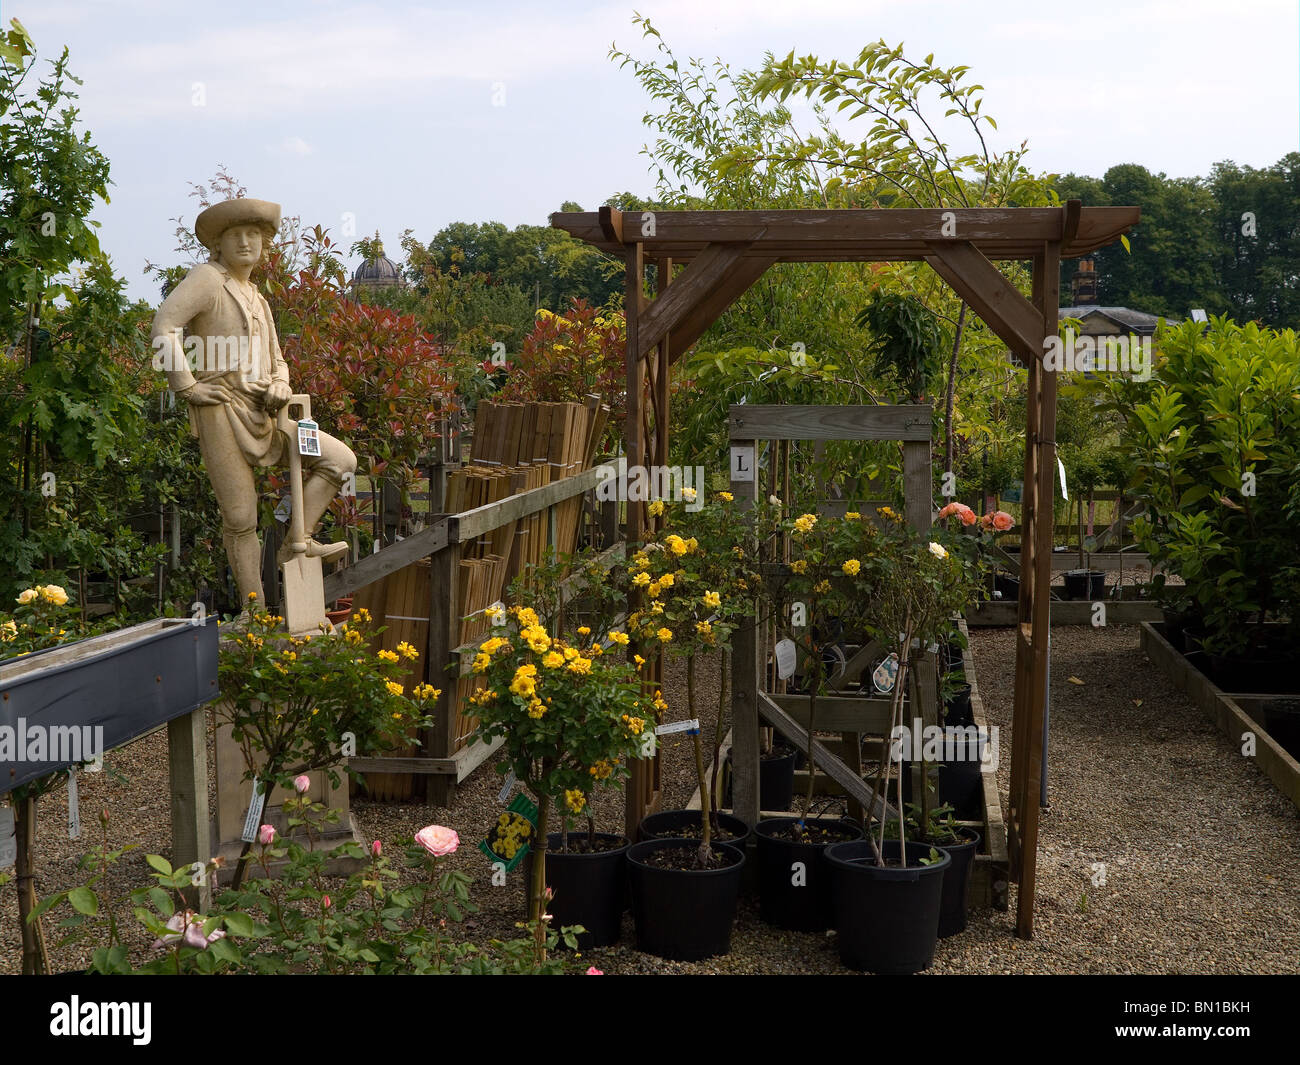 The garden centre at Castle Howard York selling plants and all kinds ...